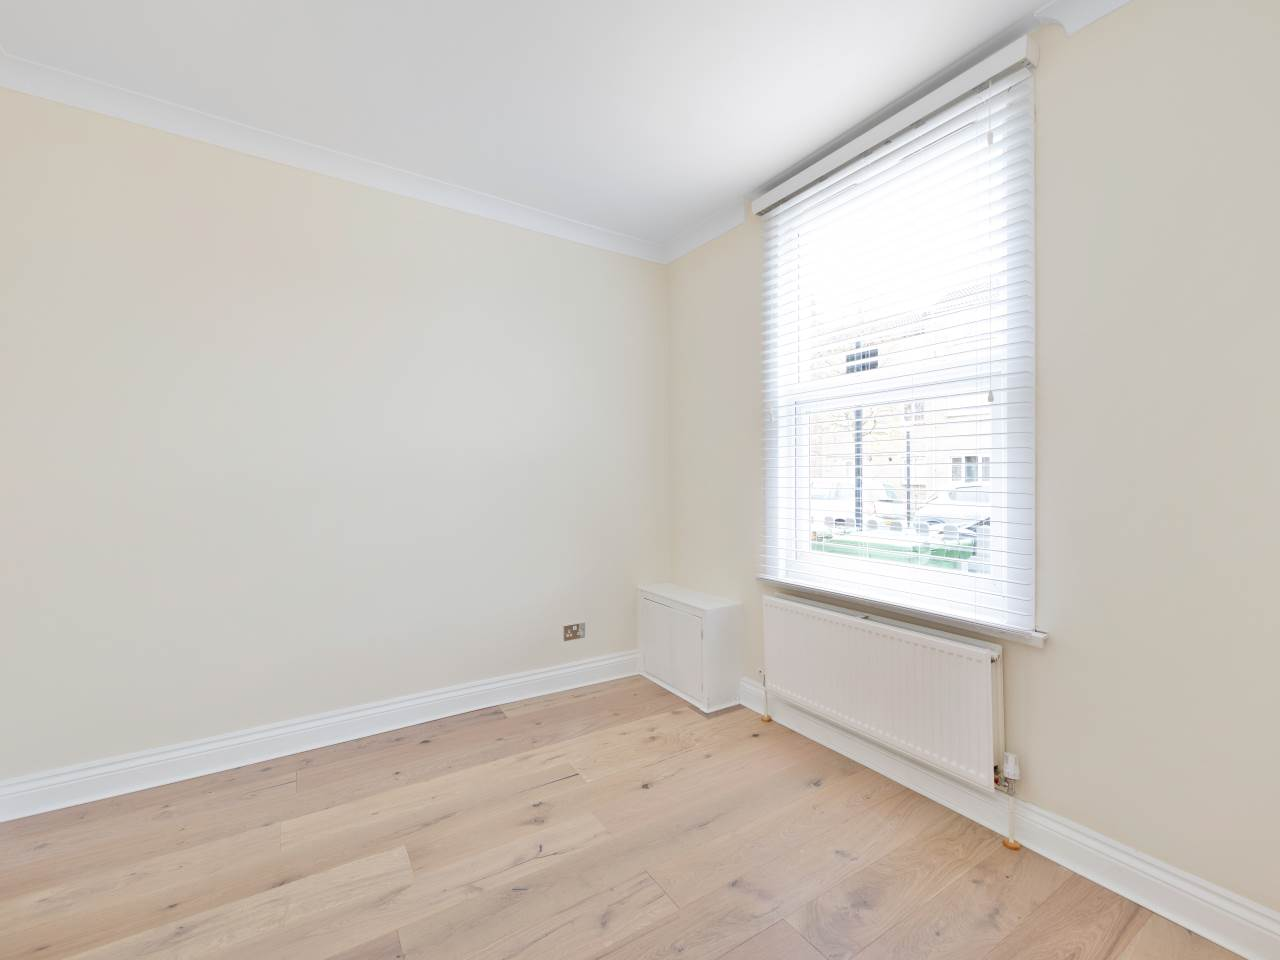 3 bed house for sale in Exning Road , Canning Town   - Property Image 5